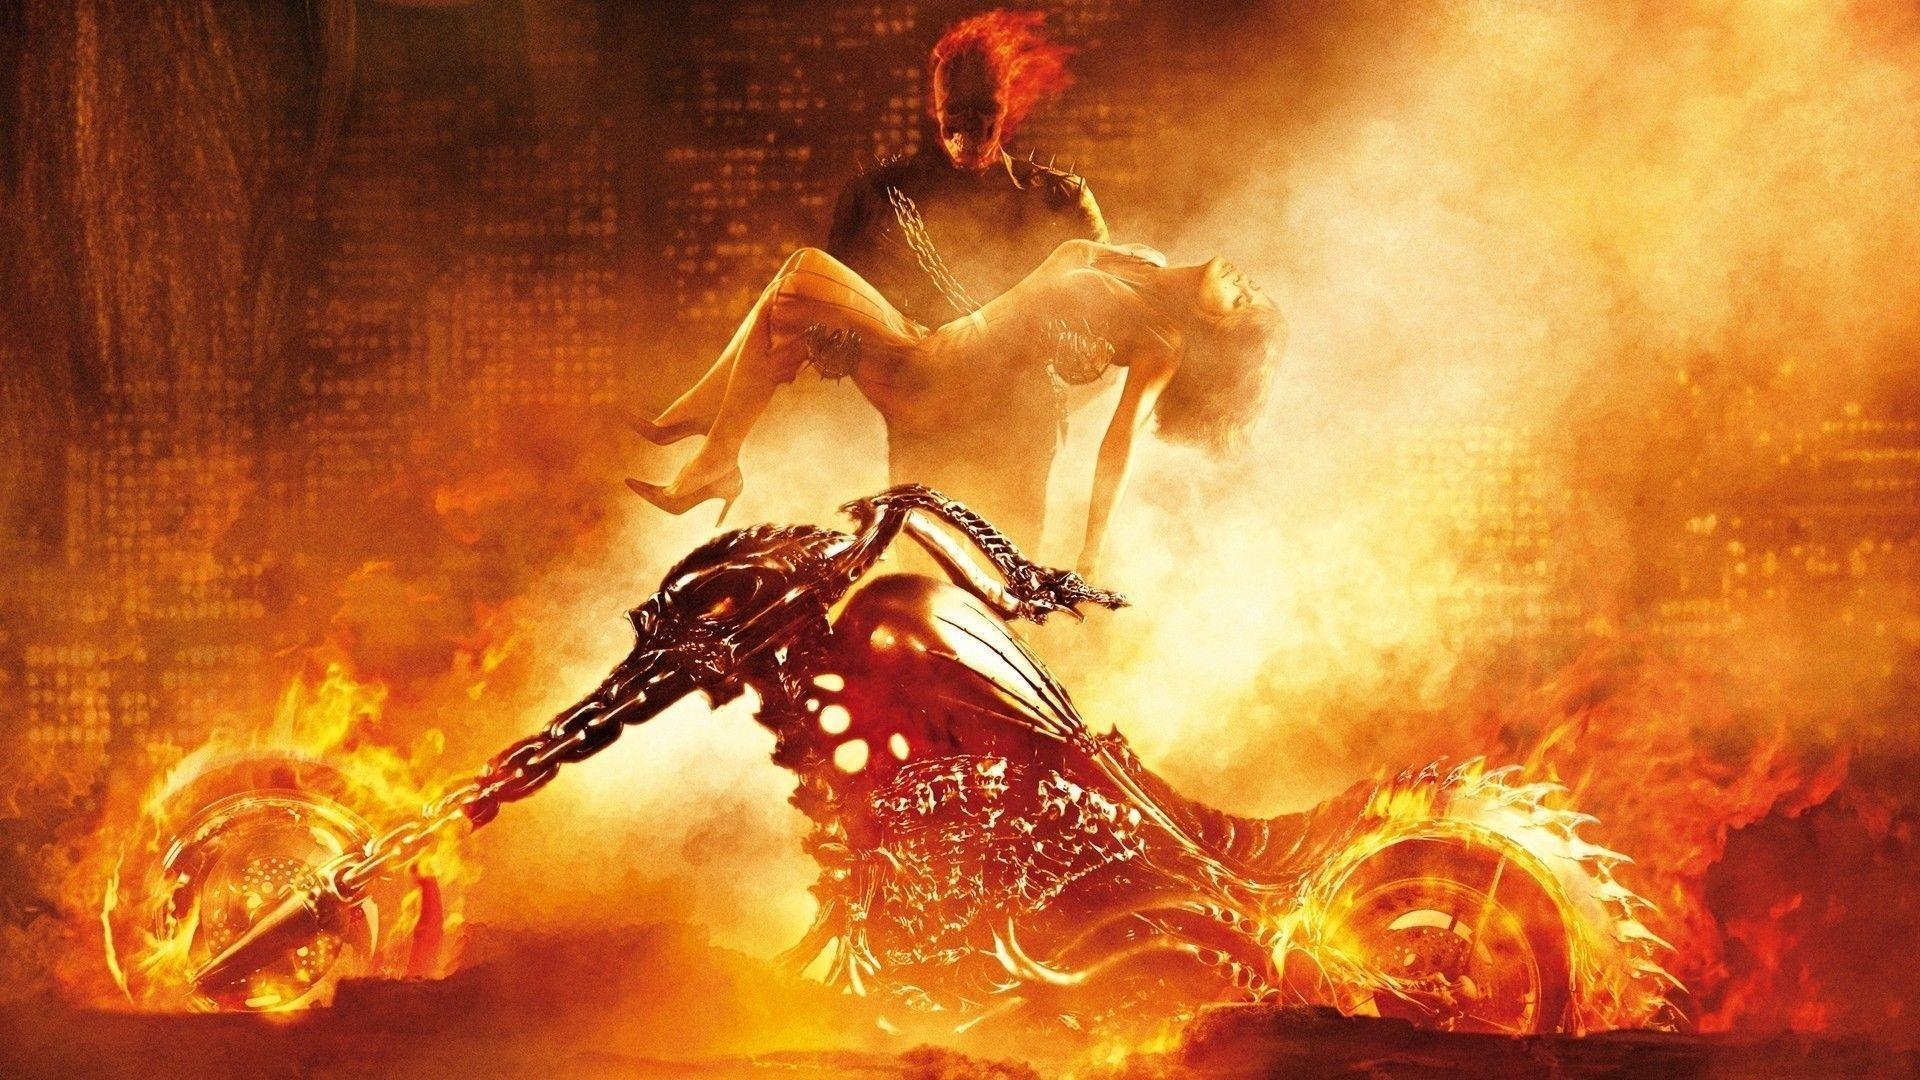 Ghost Rider 3D Wallpapers - Wallpaper Cave